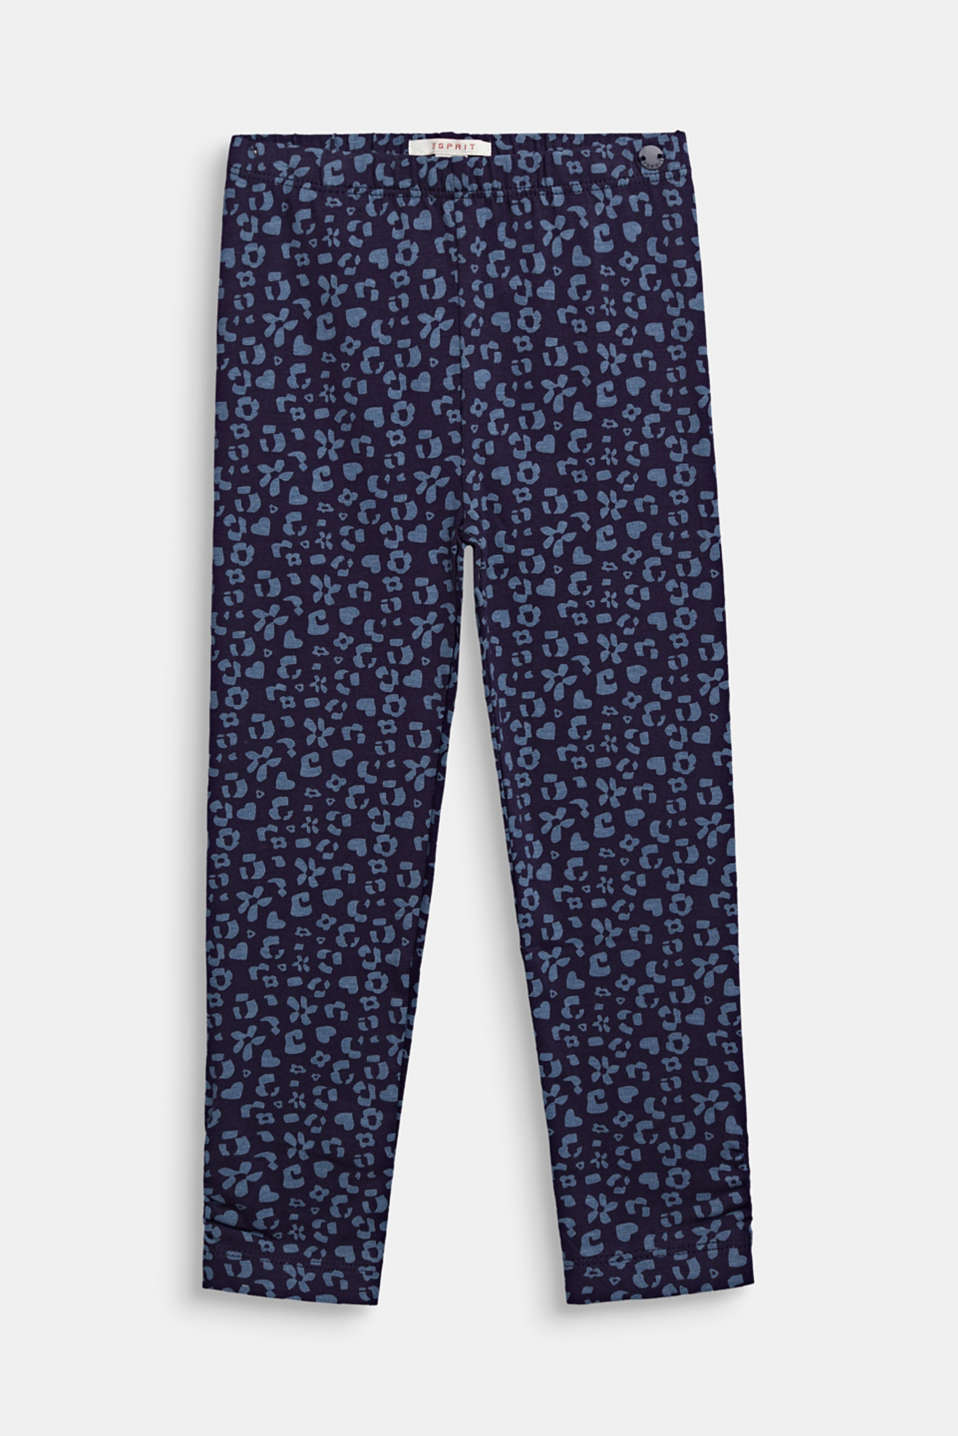 Leggings with a printed pattern, NIGHT BLUE, detail image number 0